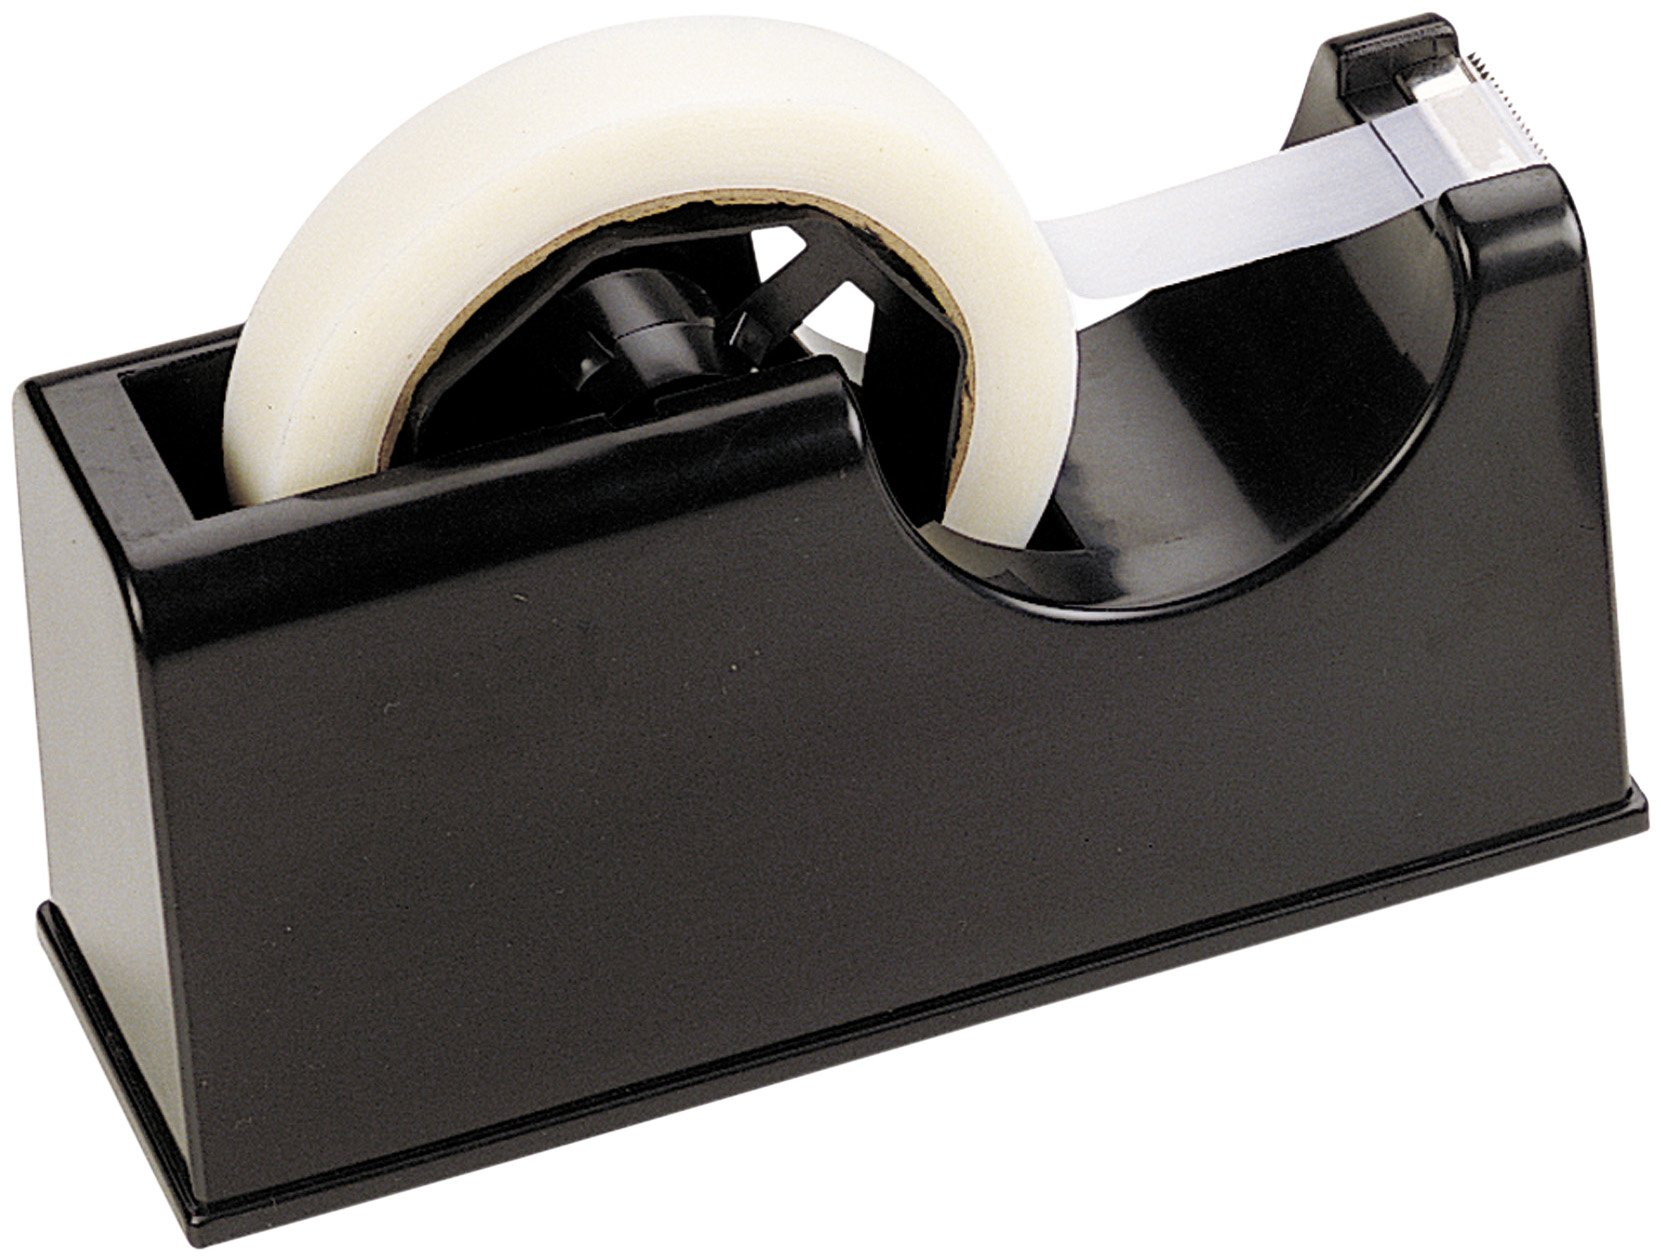 Officemate 2-in-1 Heavy Duty Tape Dispenser 1-Inch and 3-